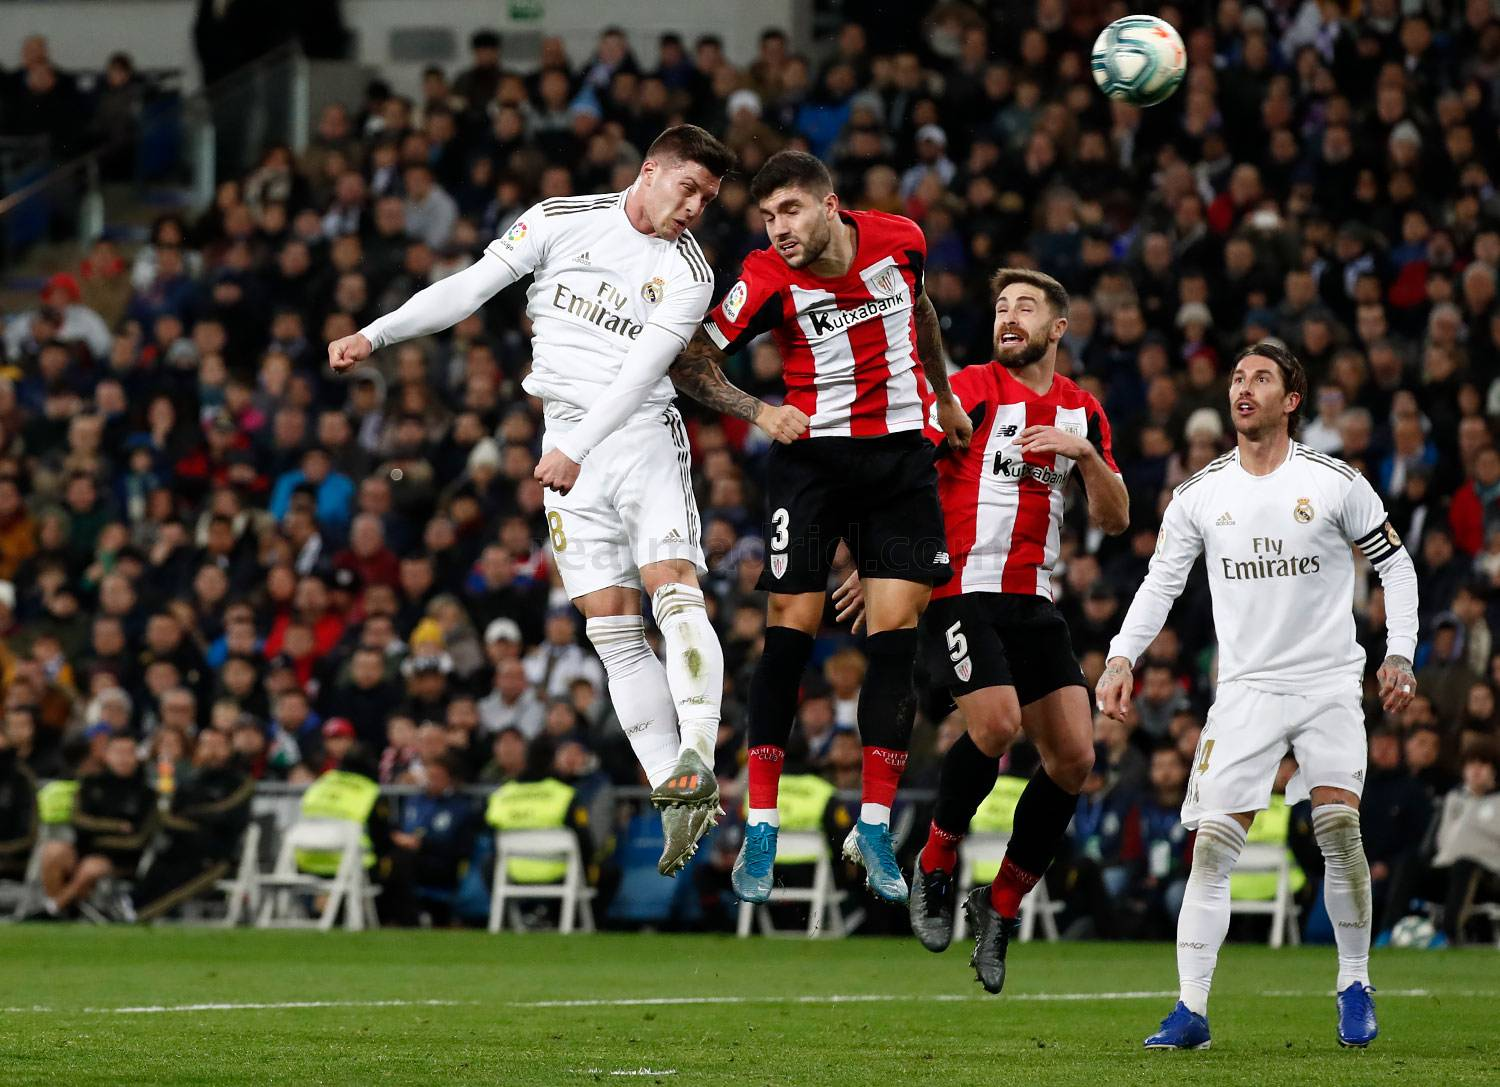 Real Madrid - Real Madrid - Athletic - 22-12-2019